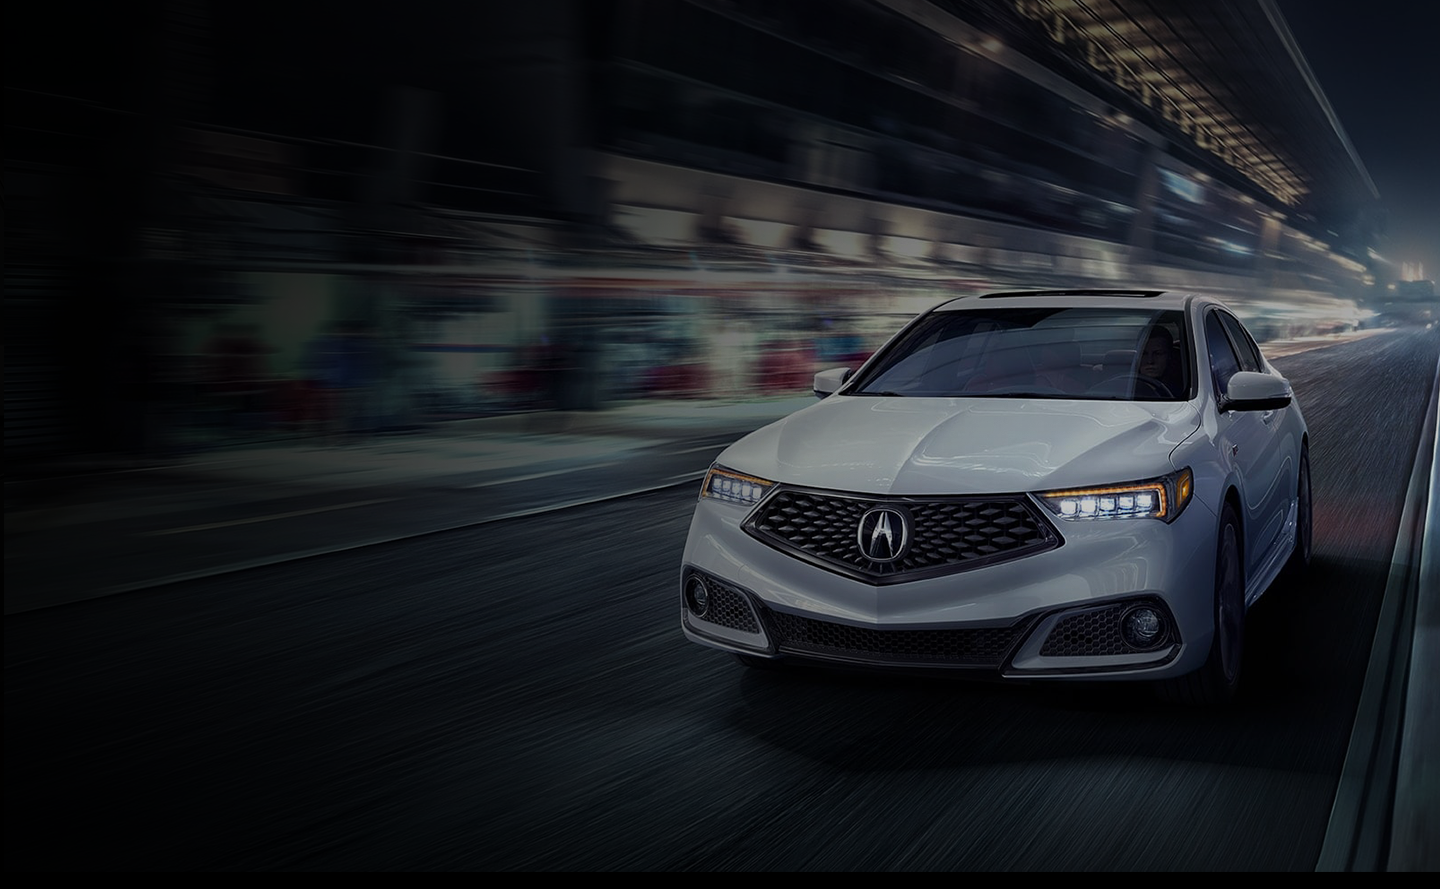 Acura Tlx Vs Lexus Is Details More Luxury And Performance Bang For Your Buck